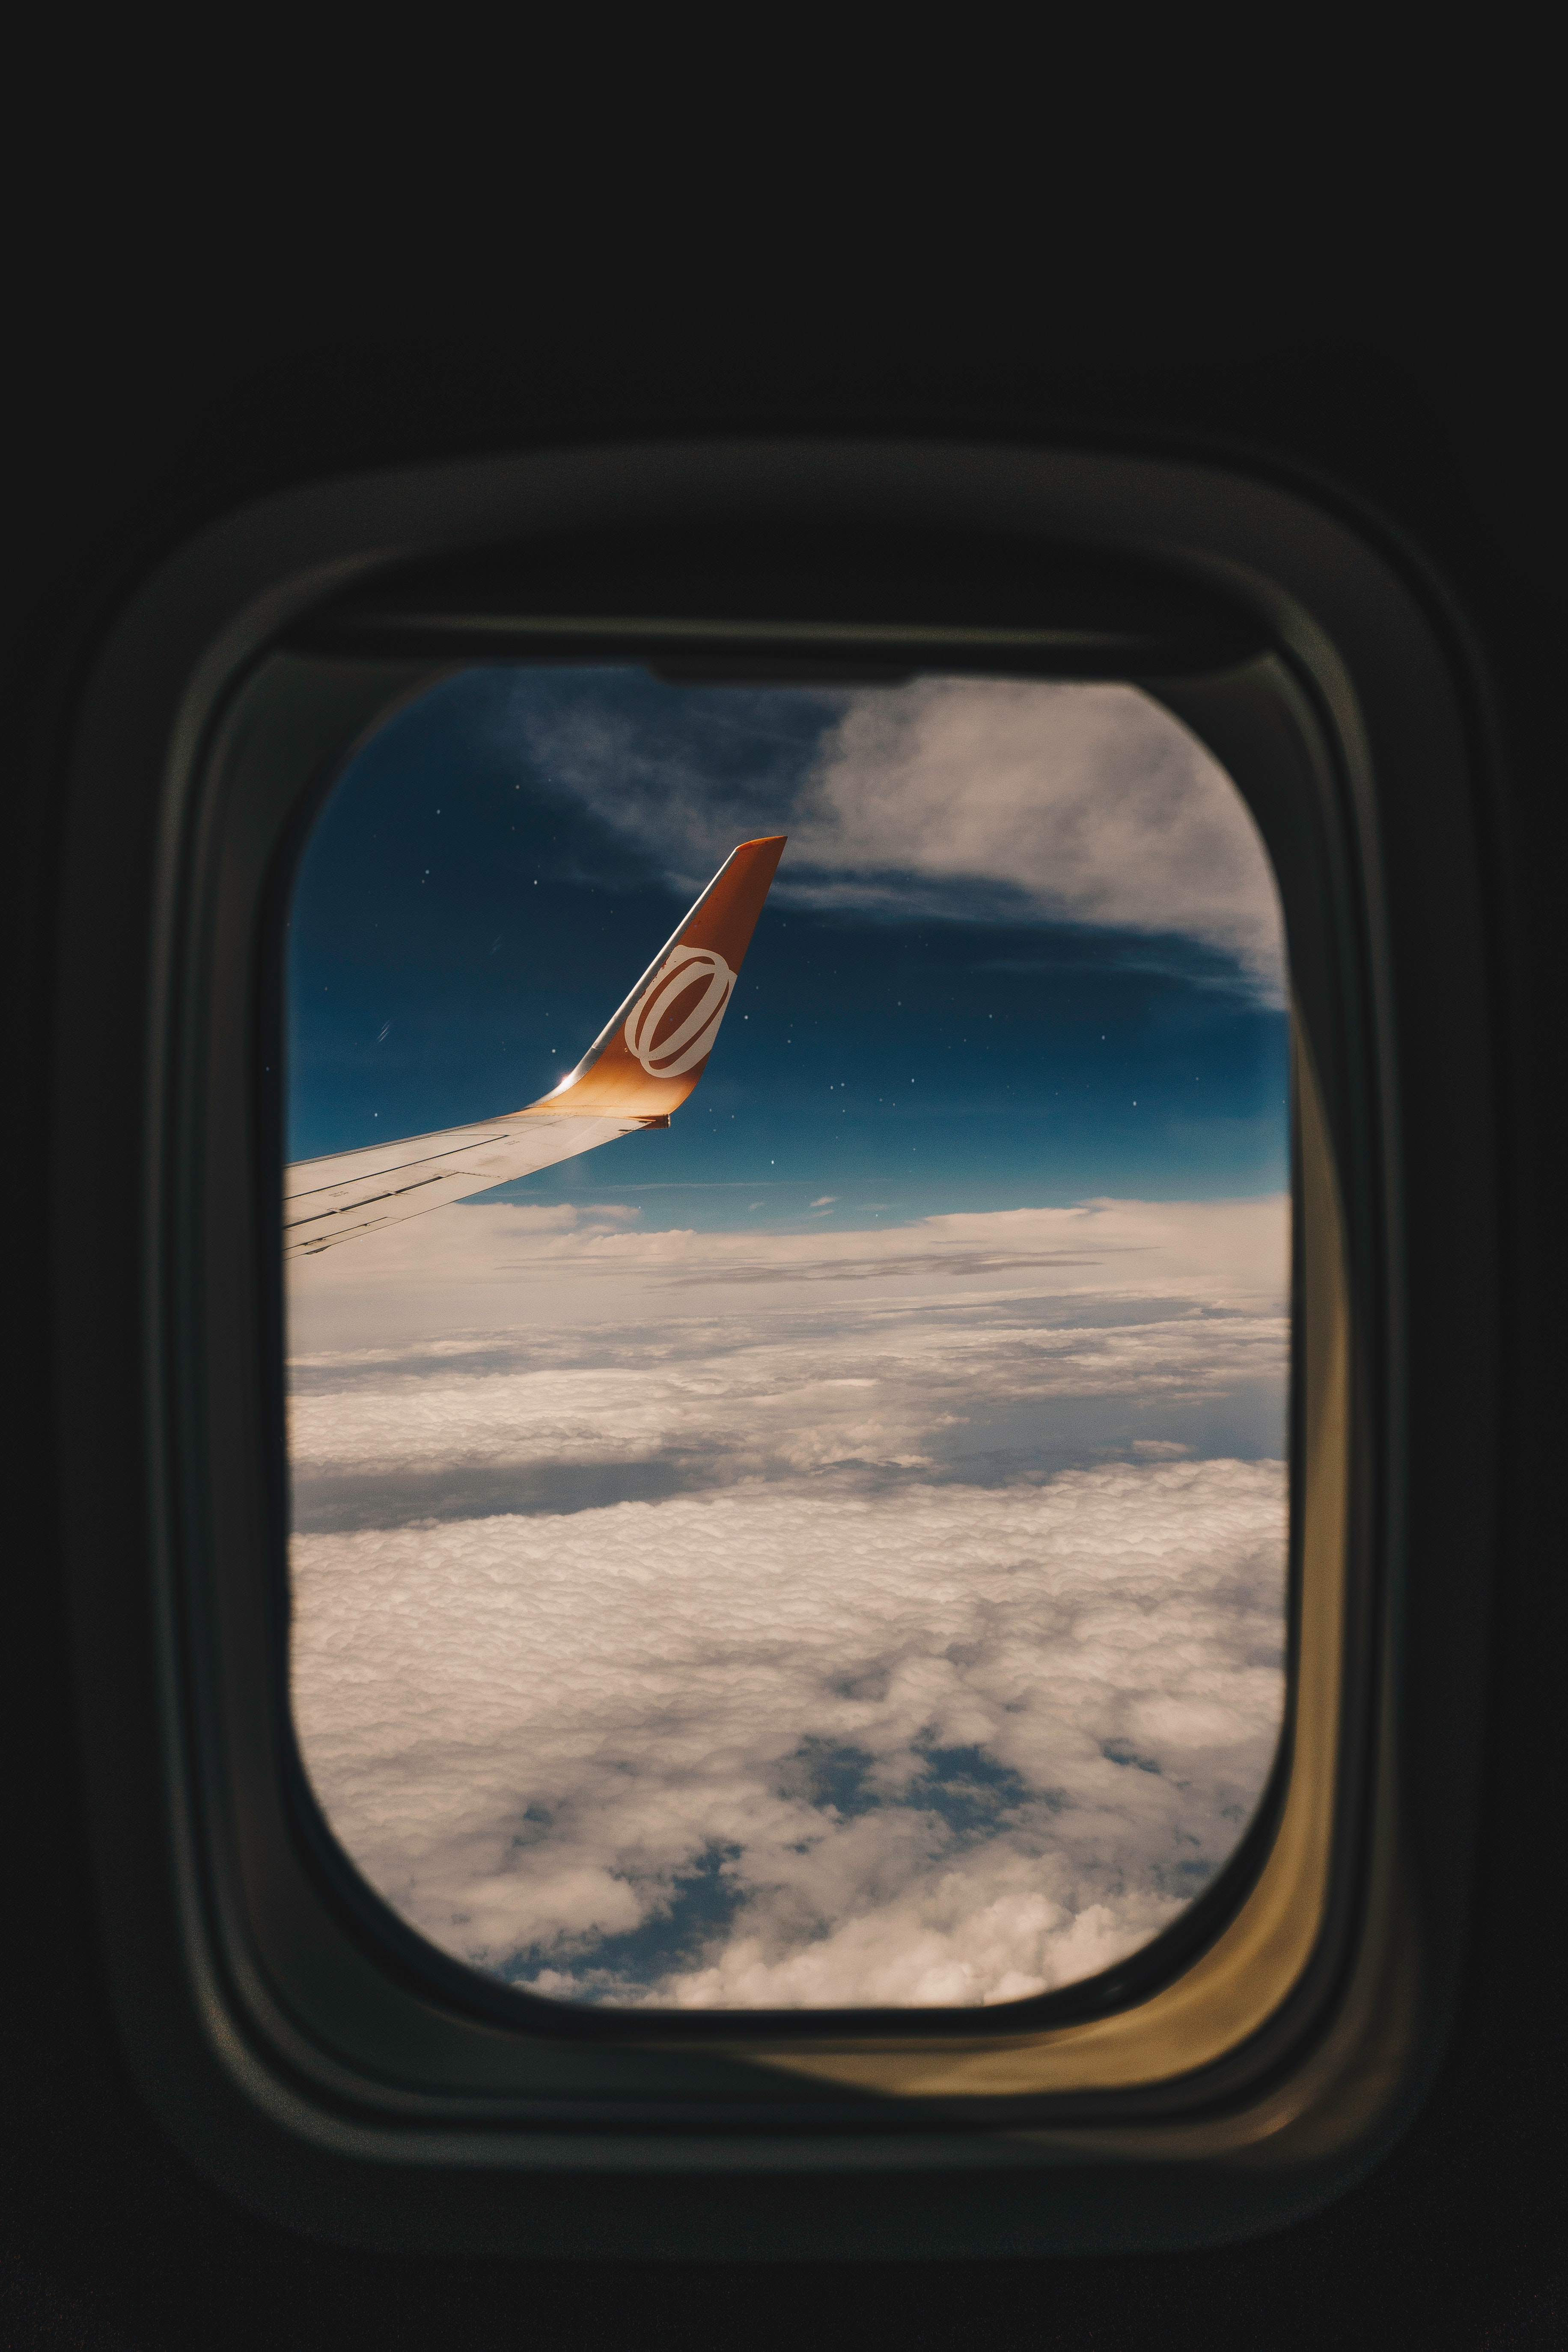 112690 download wallpaper Miscellanea, Miscellaneous, Porthole, Window, Airplane Wing, Wing Of The Plane, Flight, Clouds screensavers and pictures for free